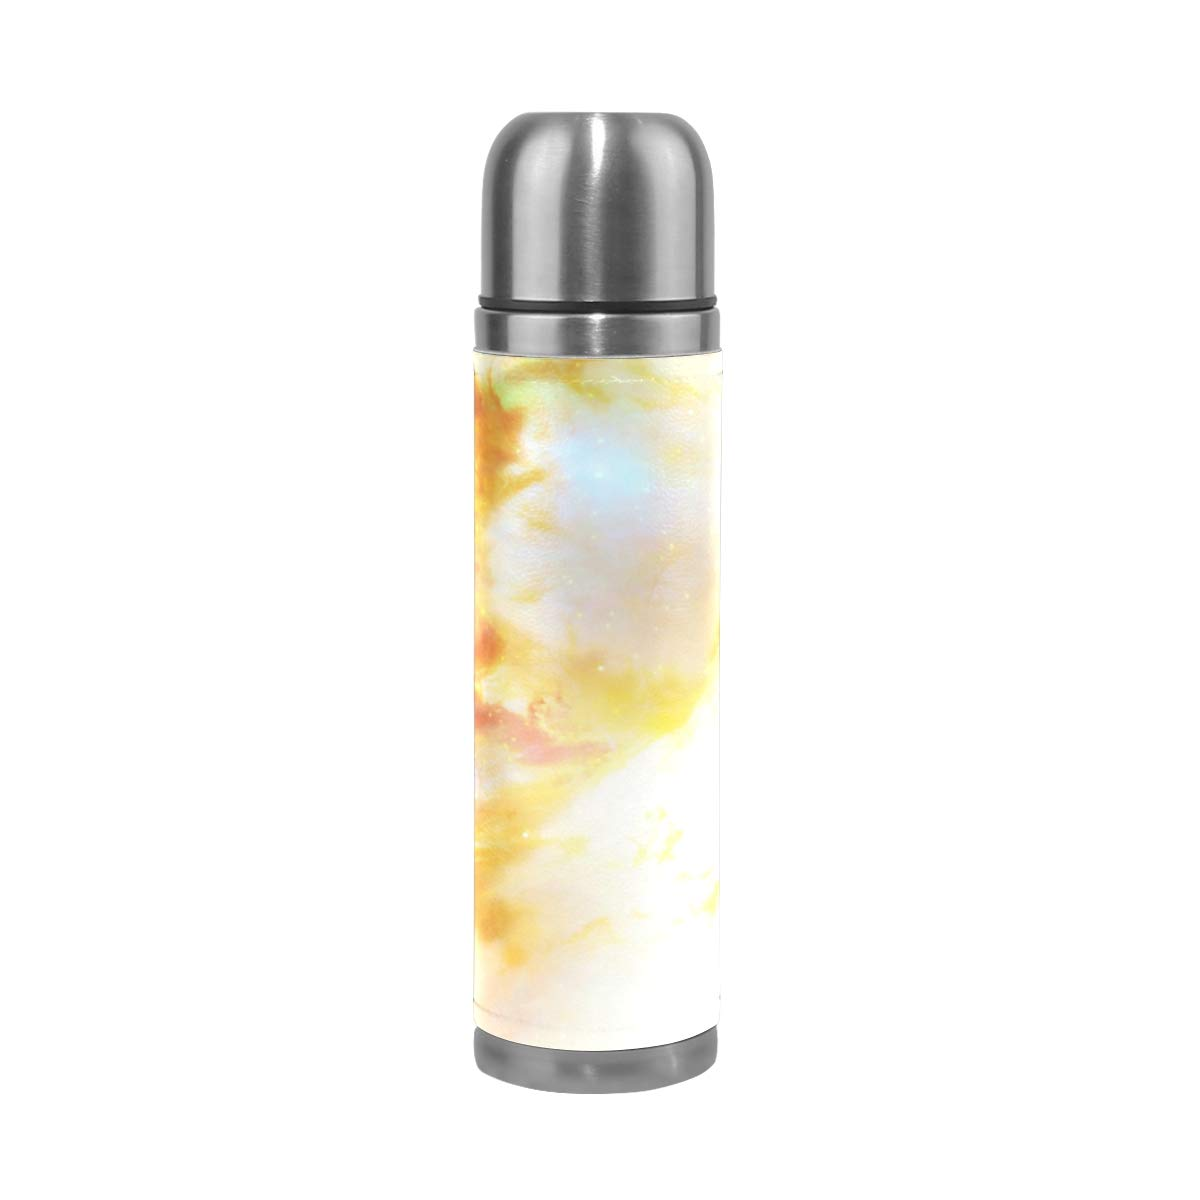 OuLian Water Bottle Who Your Spirit Animal Travel Insulated Stainless Steel Water Bottles Leak Proof Double Wall Thermos Leather Cover 17Oz (500ml)